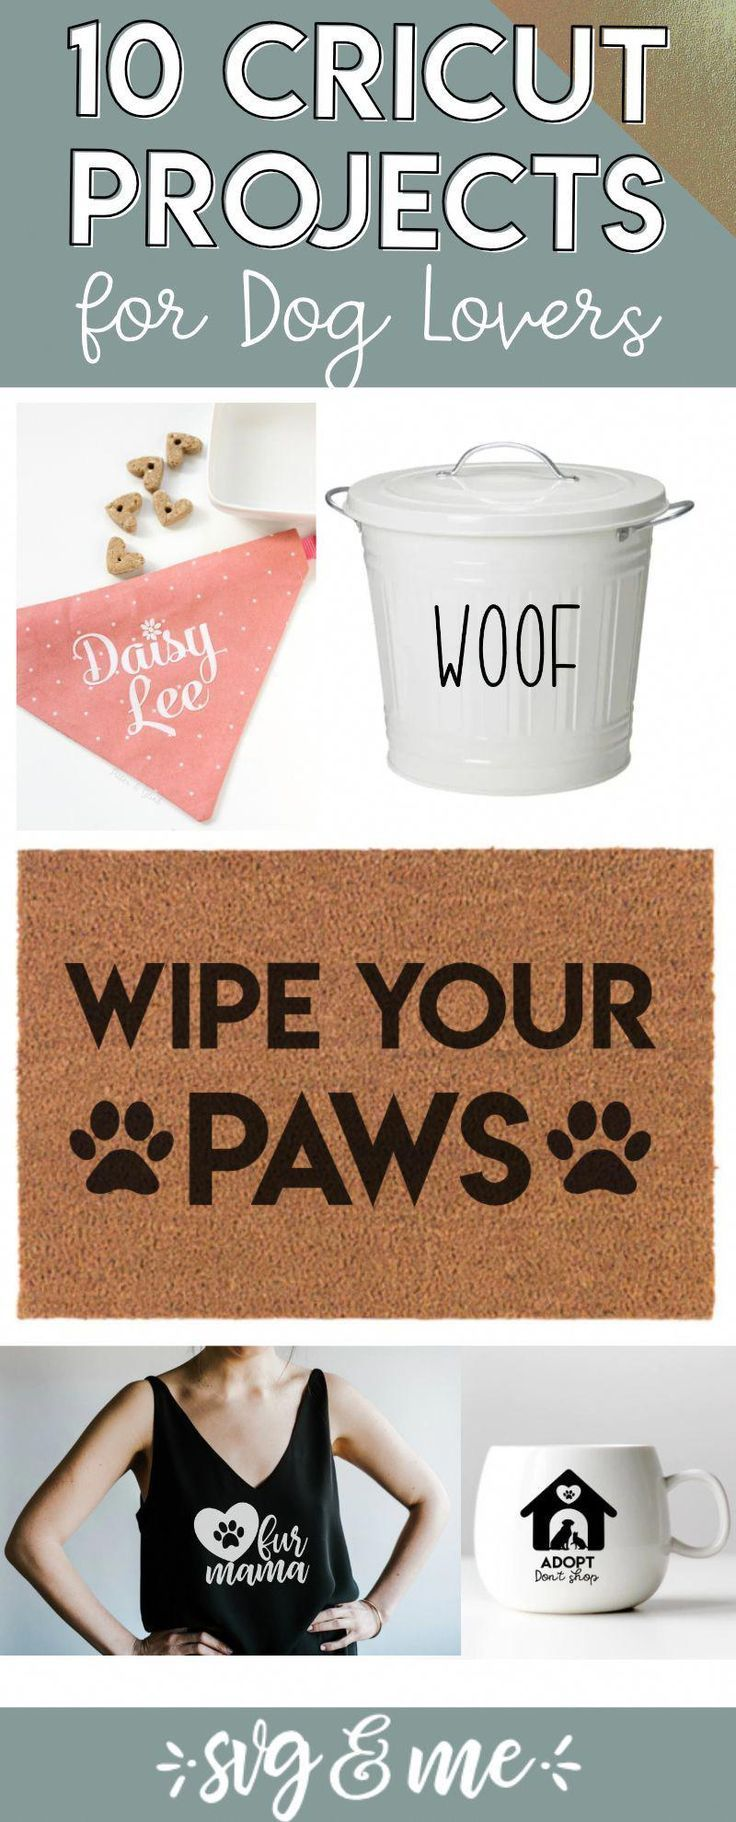 10 Adorable Cricut Projects Every Dog Lover Will Want to Copy